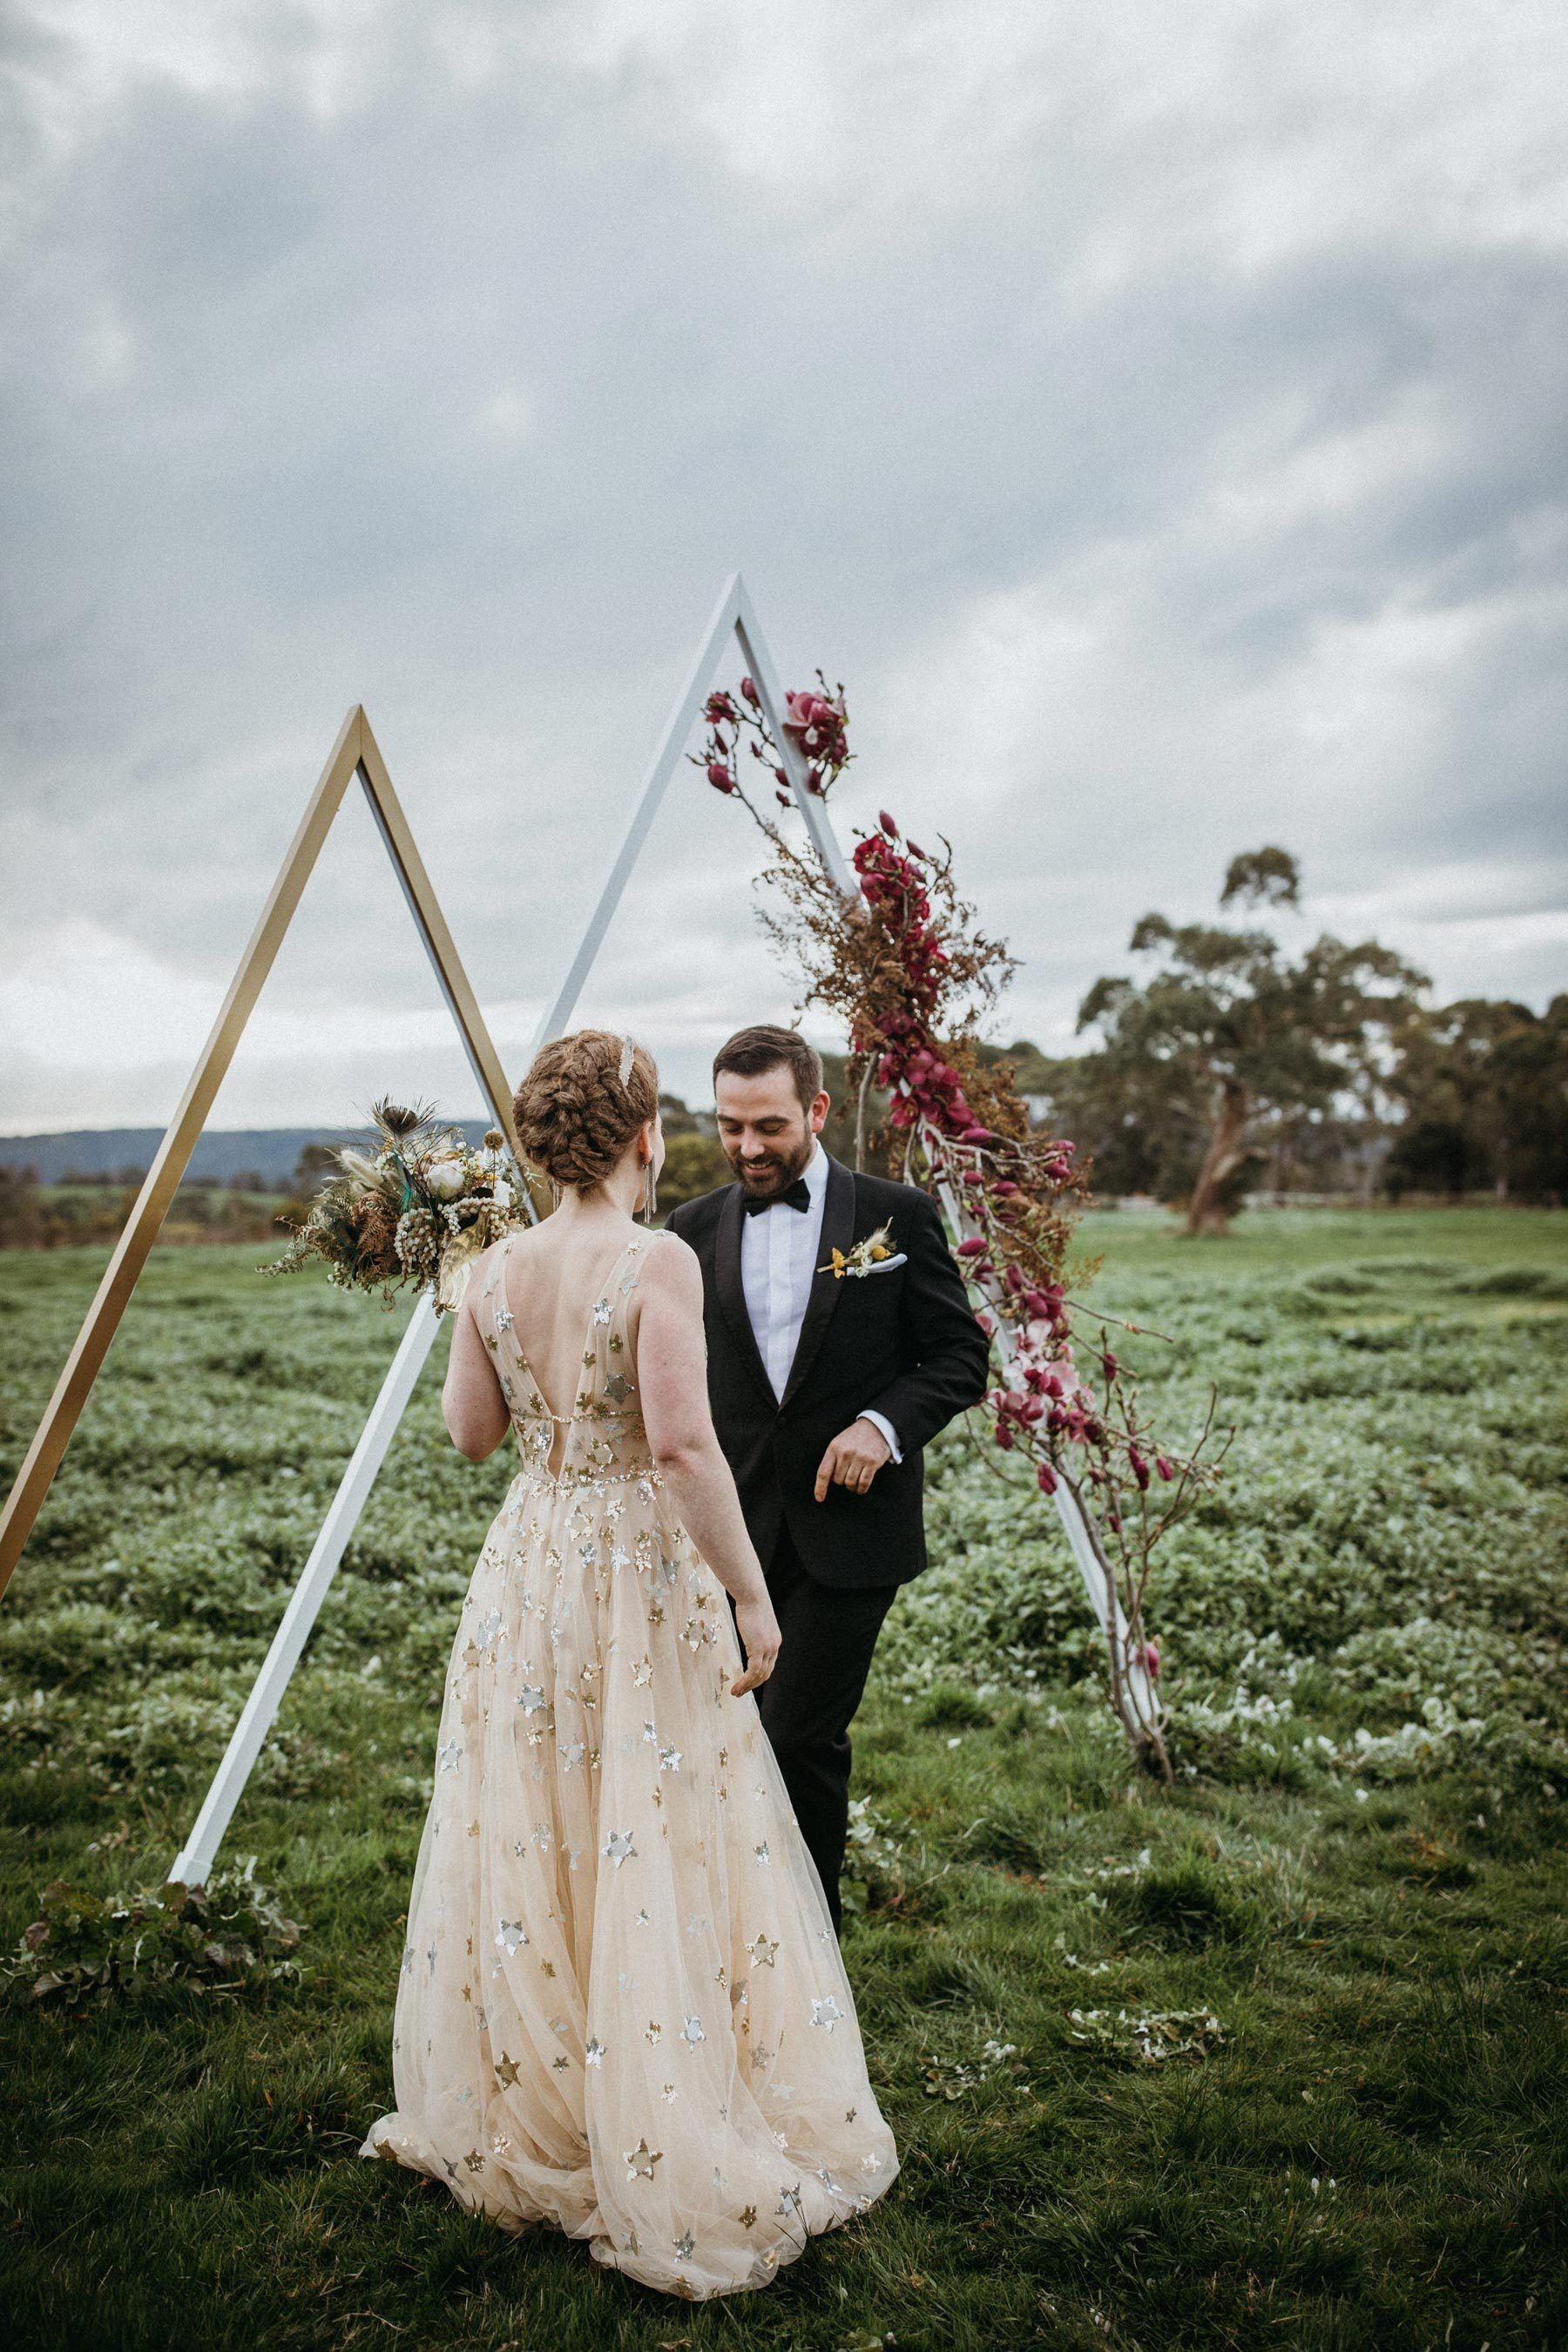 LaurenAnne & Mark's Shimmering Elopement (gifted by their